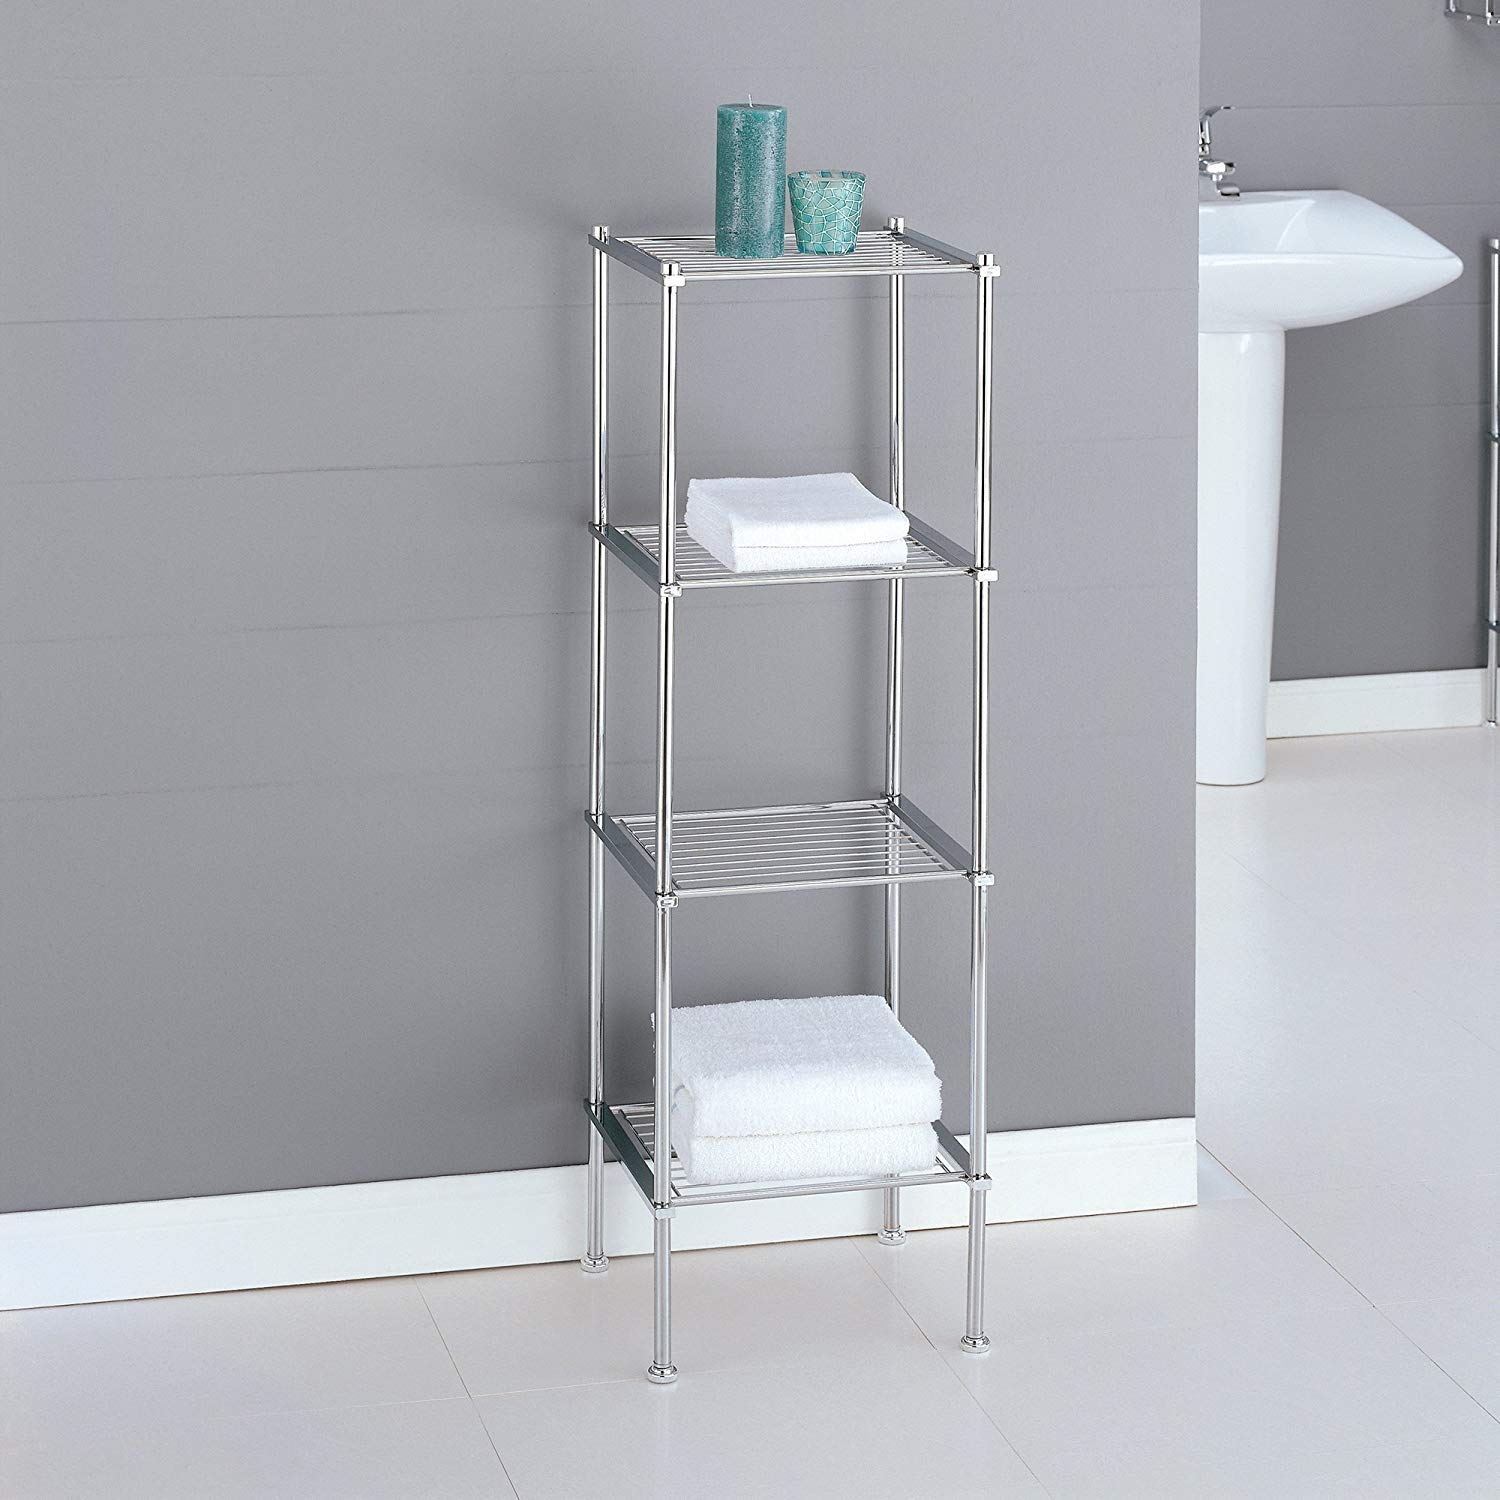 Organize It All 4 Tier Chrome Freestanding Bathroom Storage intended for proportions 1500 X 1500